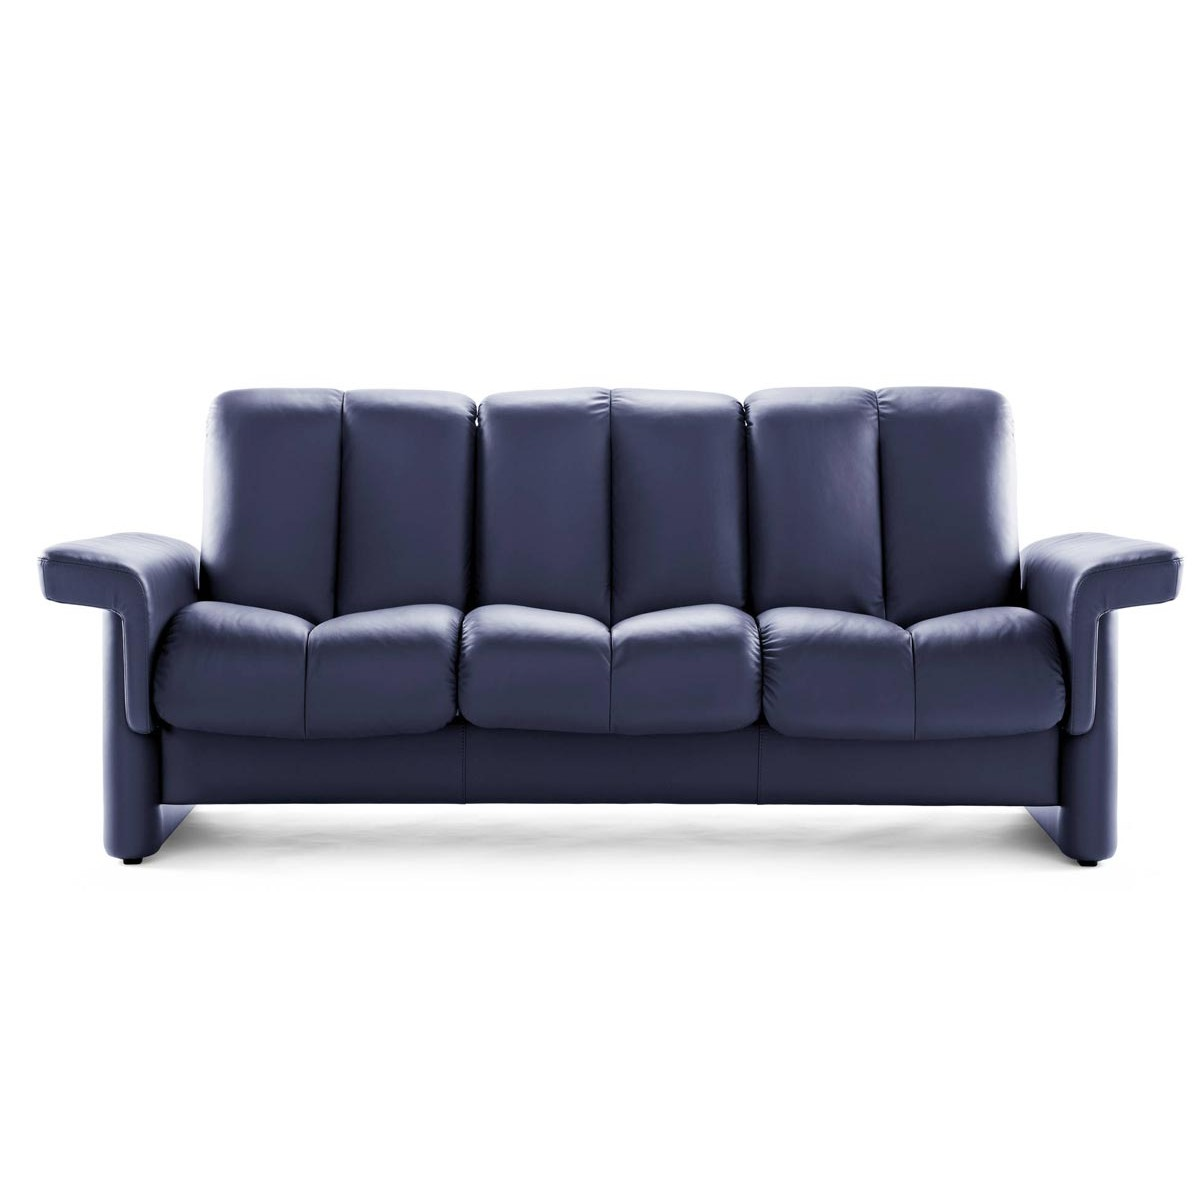 low back sofa height chair design stressless legend from 4 595 00 by